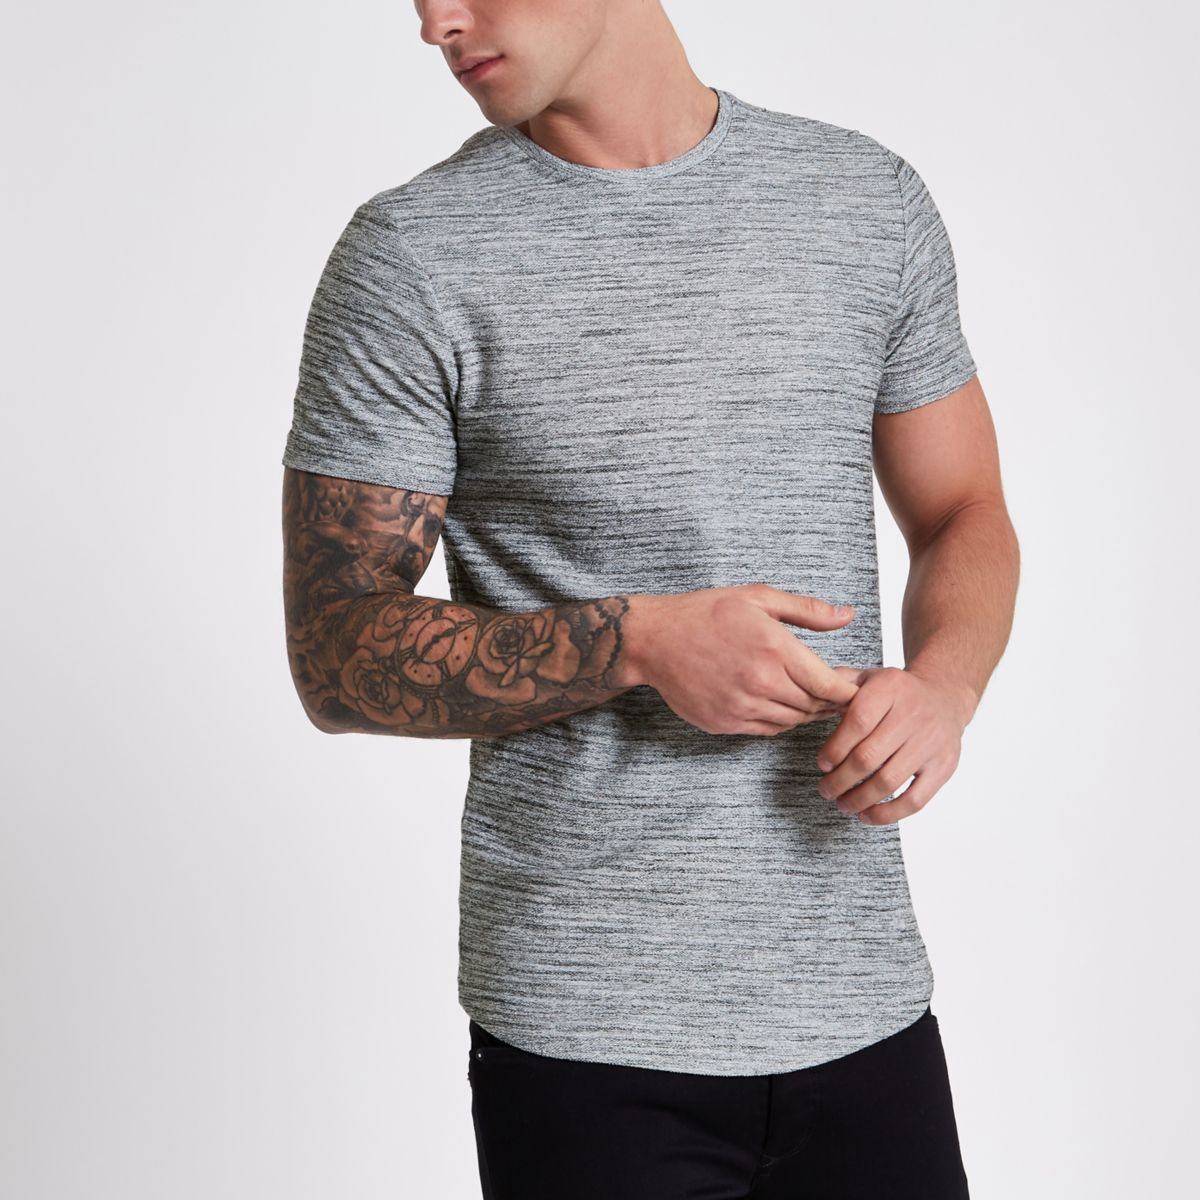 Jack & Jones Premium grey T-shirt